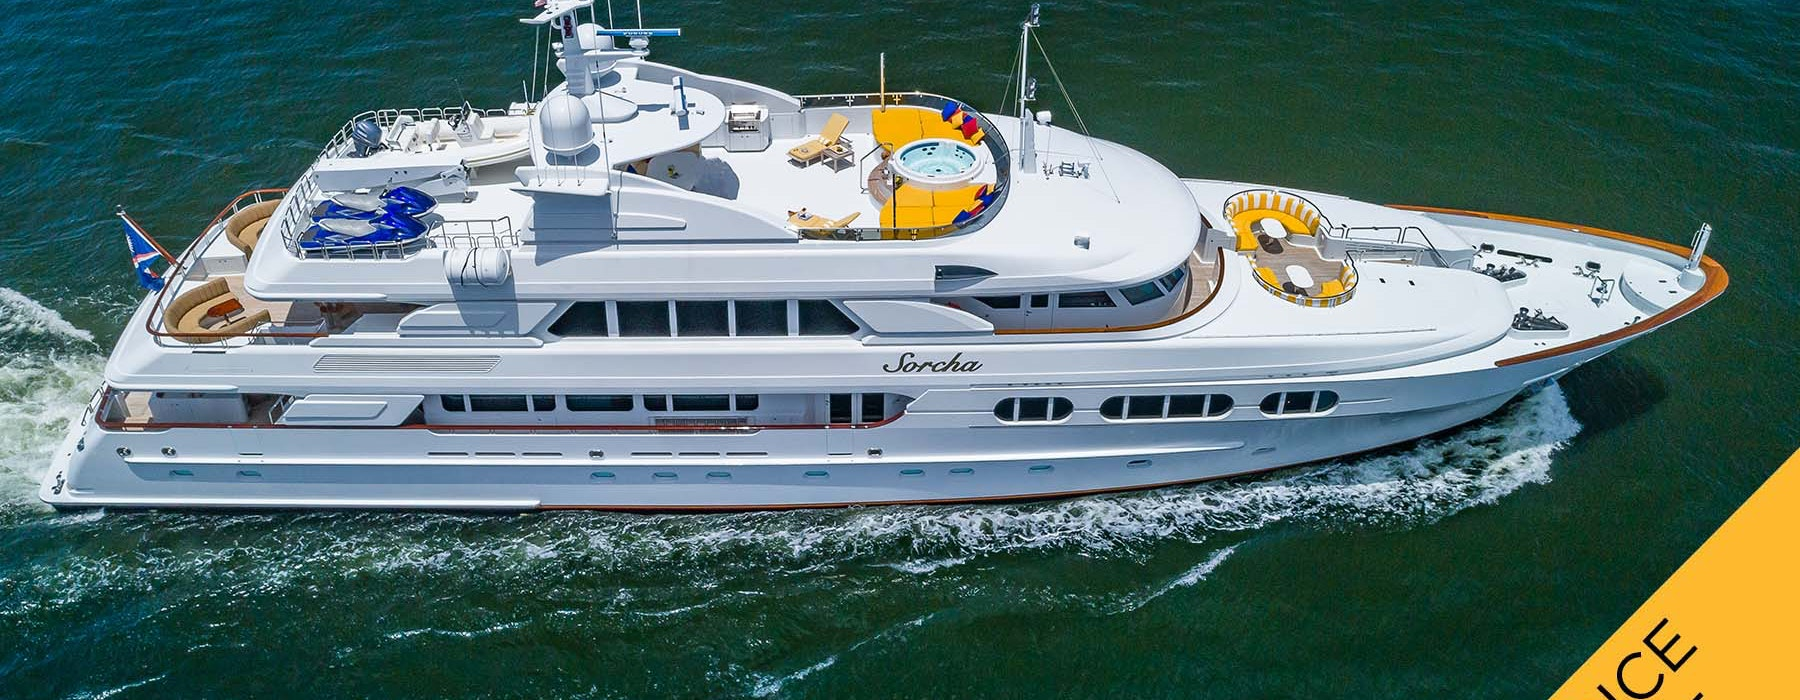 Super Yacht for Sale-Sorcha Northern Marine-46m 2005 Price Reduced